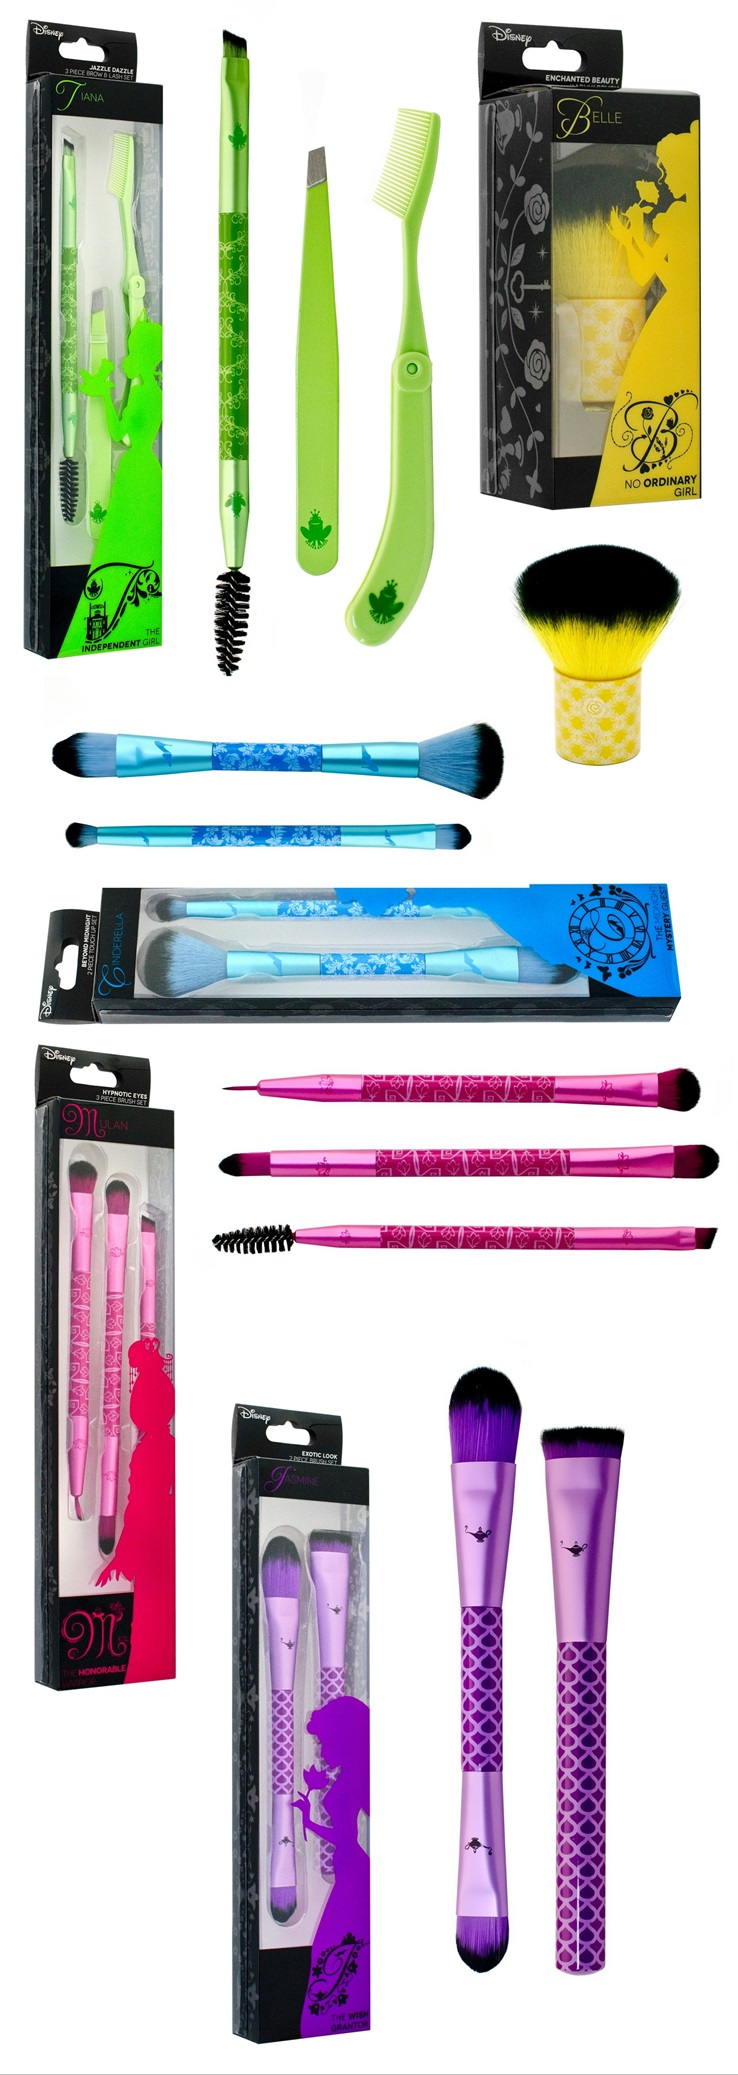 Disney x Soho Brush Sets